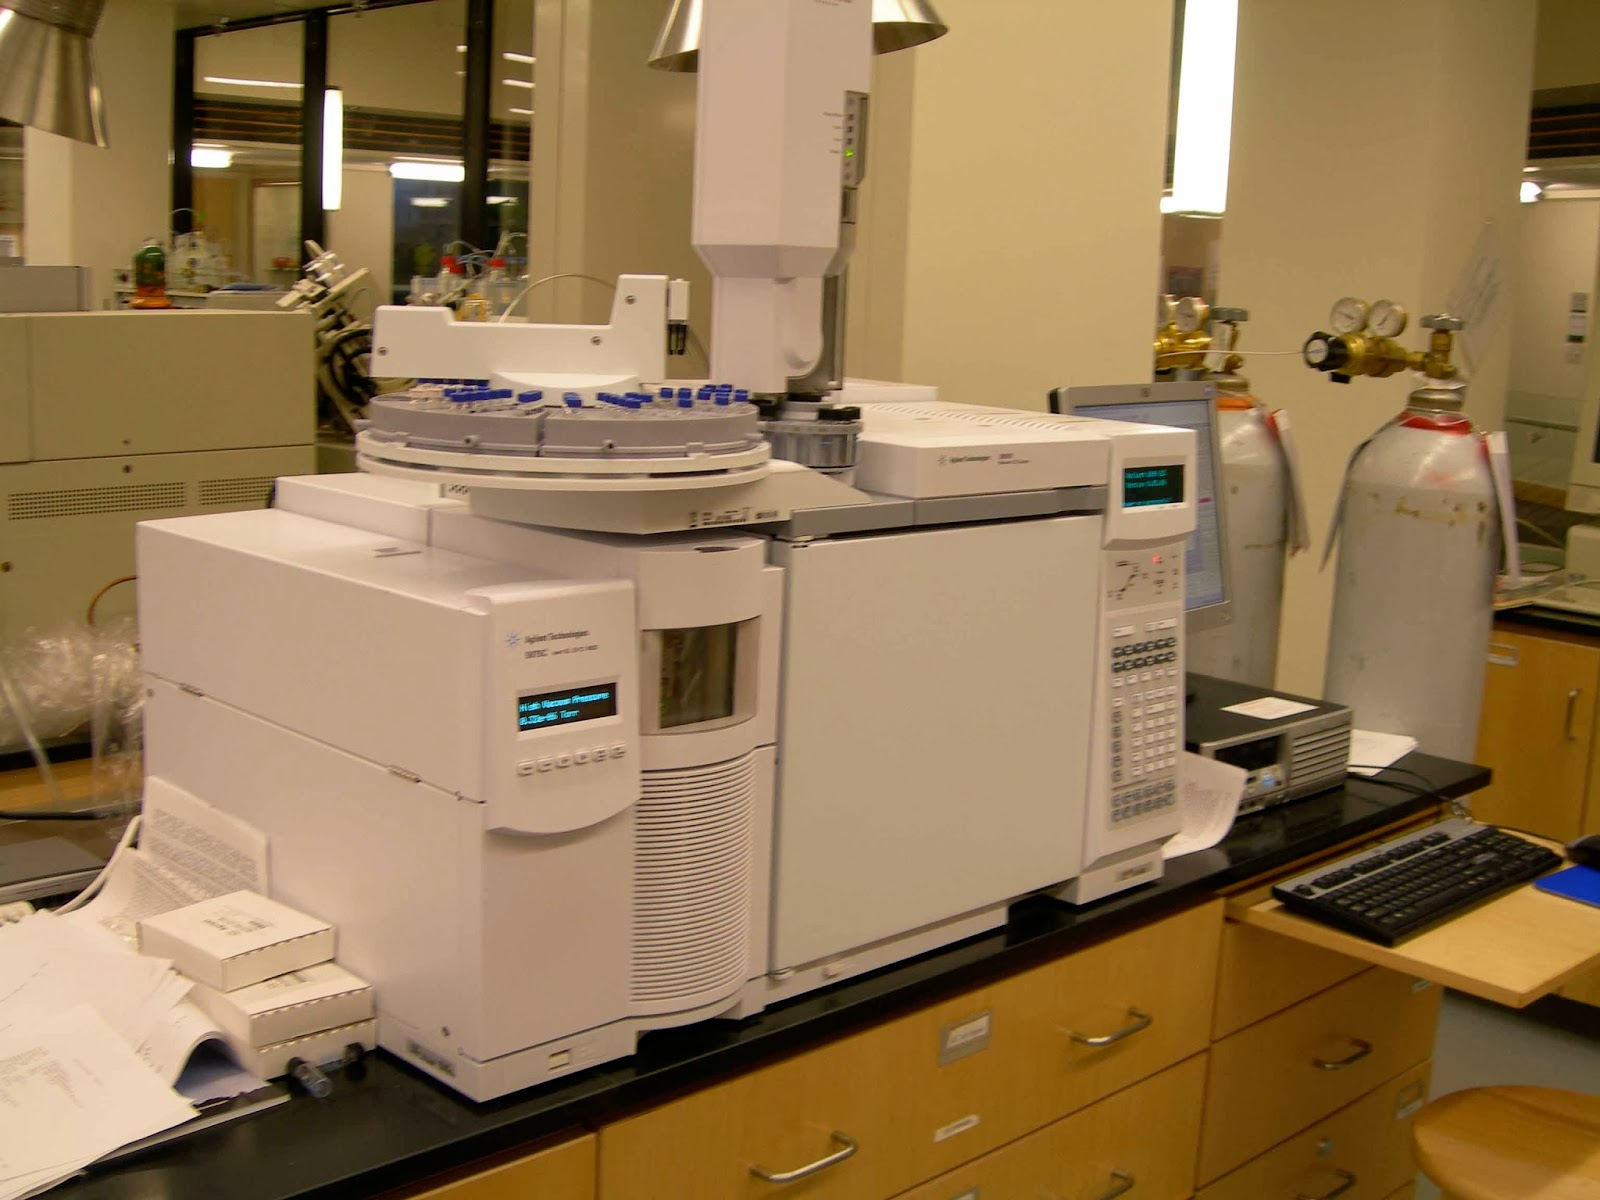 gas chromatography Gas chromatography (gc) this method depends upon the solubility and boiling points of organic liquids in order to separate them from a mixture it is both a qualitative (identity) and quantitative (how much of each) tool.